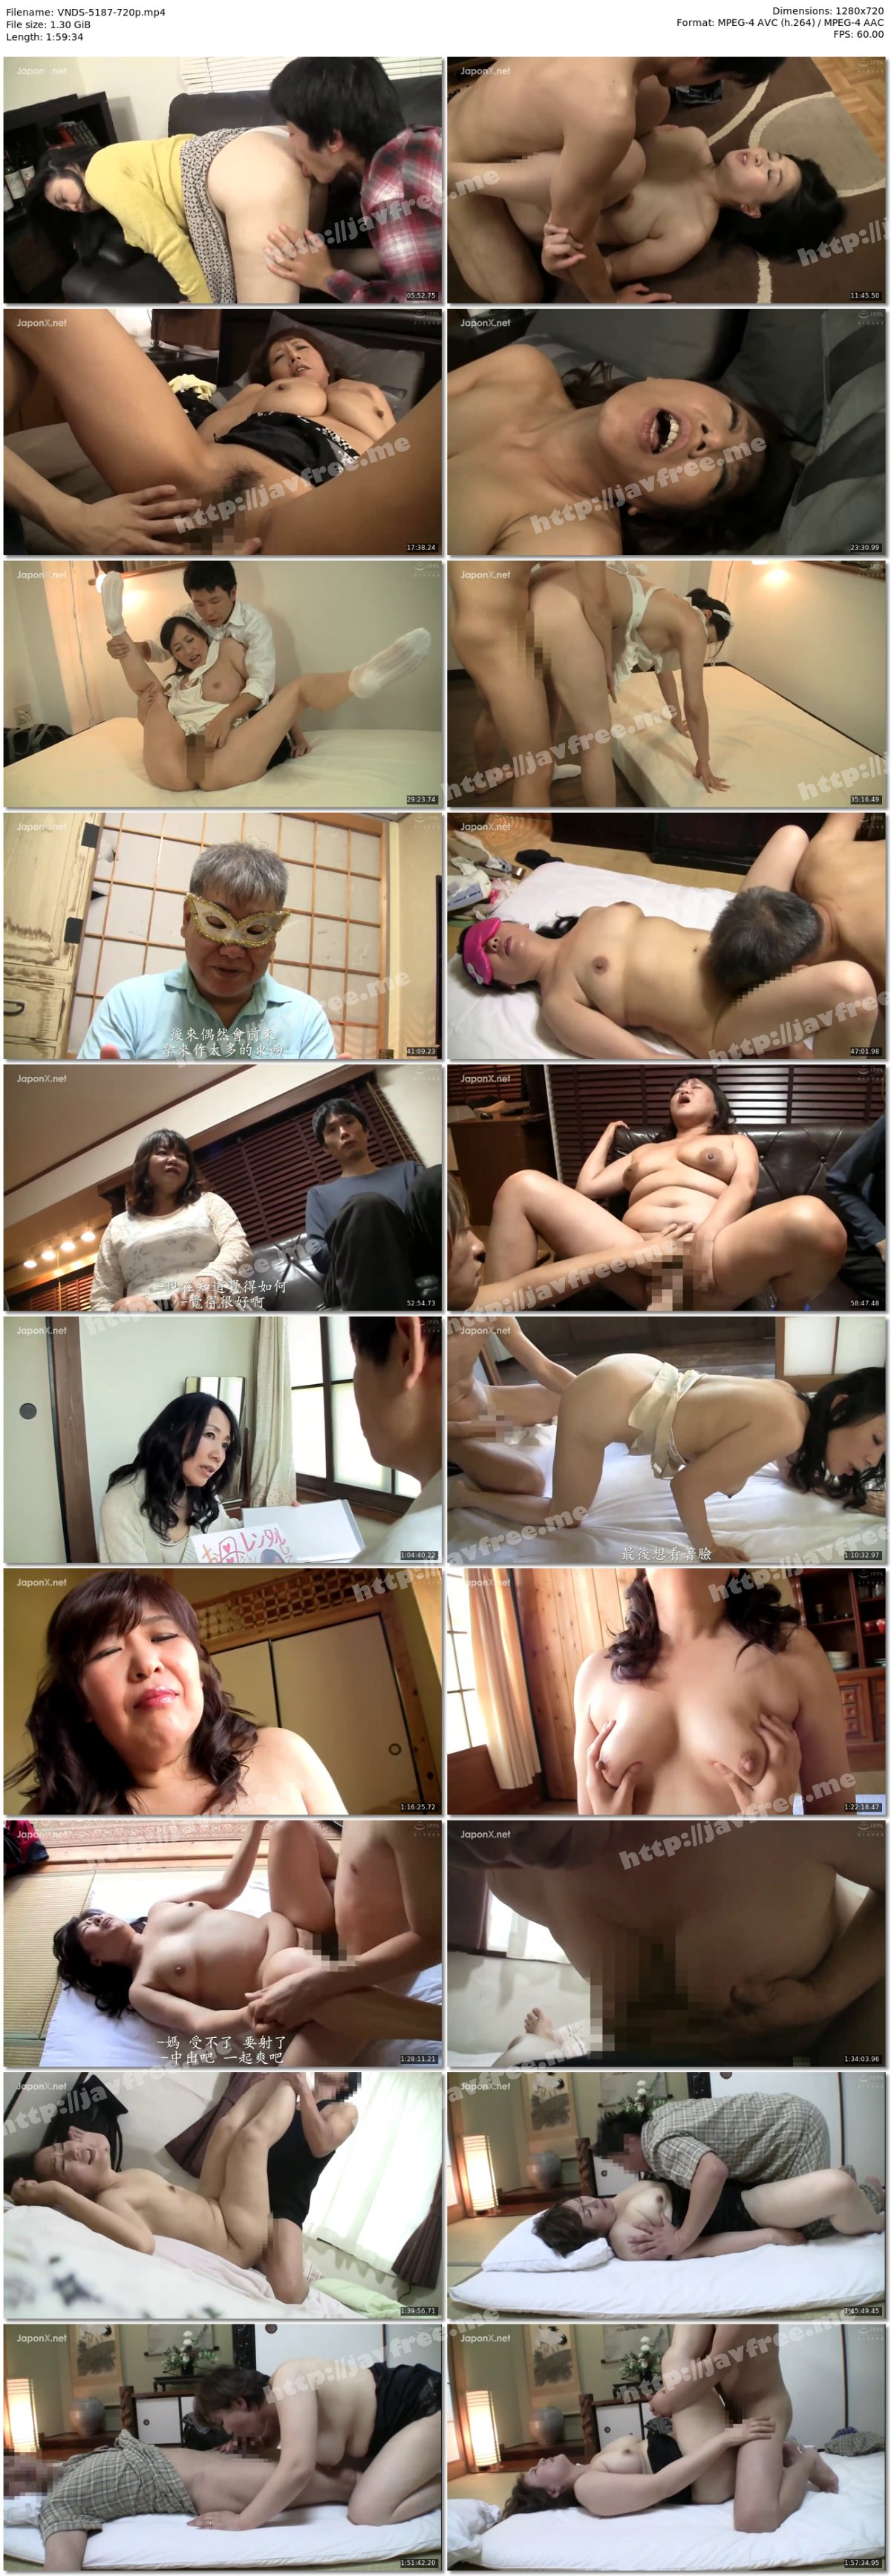 [HD][VNDS-5187] 豊かな肉付きの昭和の豊乳熟女 淫れ狂う五十路四十路 - image VNDS-5187-720p on https://javfree.me